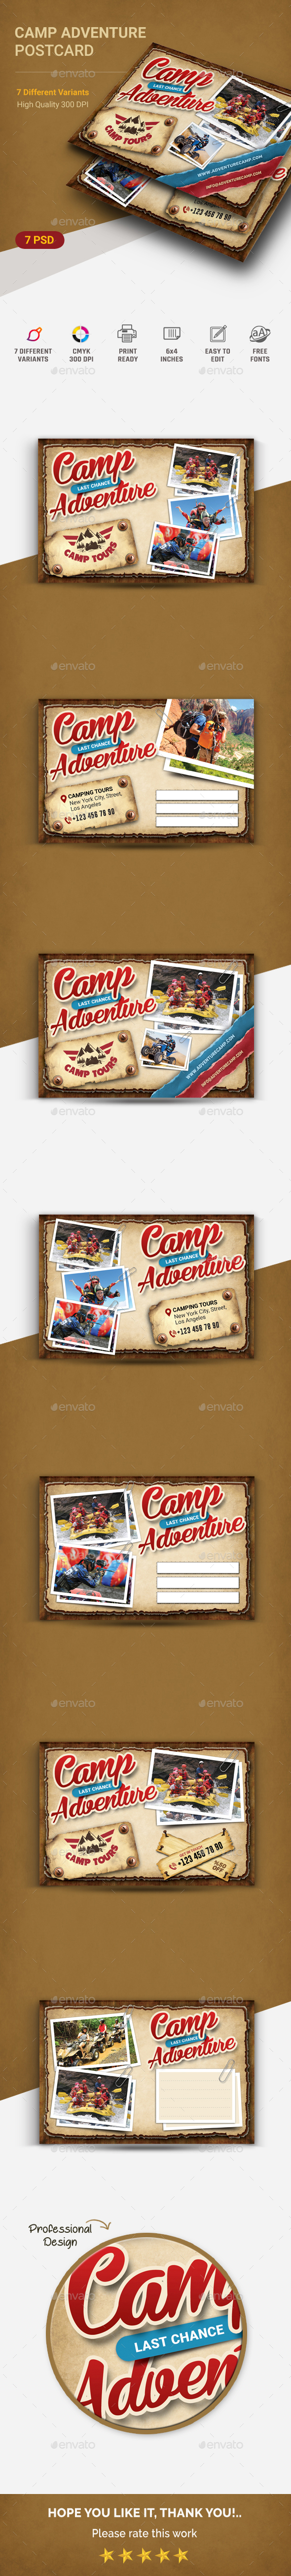 GraphicRiver Camping Adventure Postcard 20876726